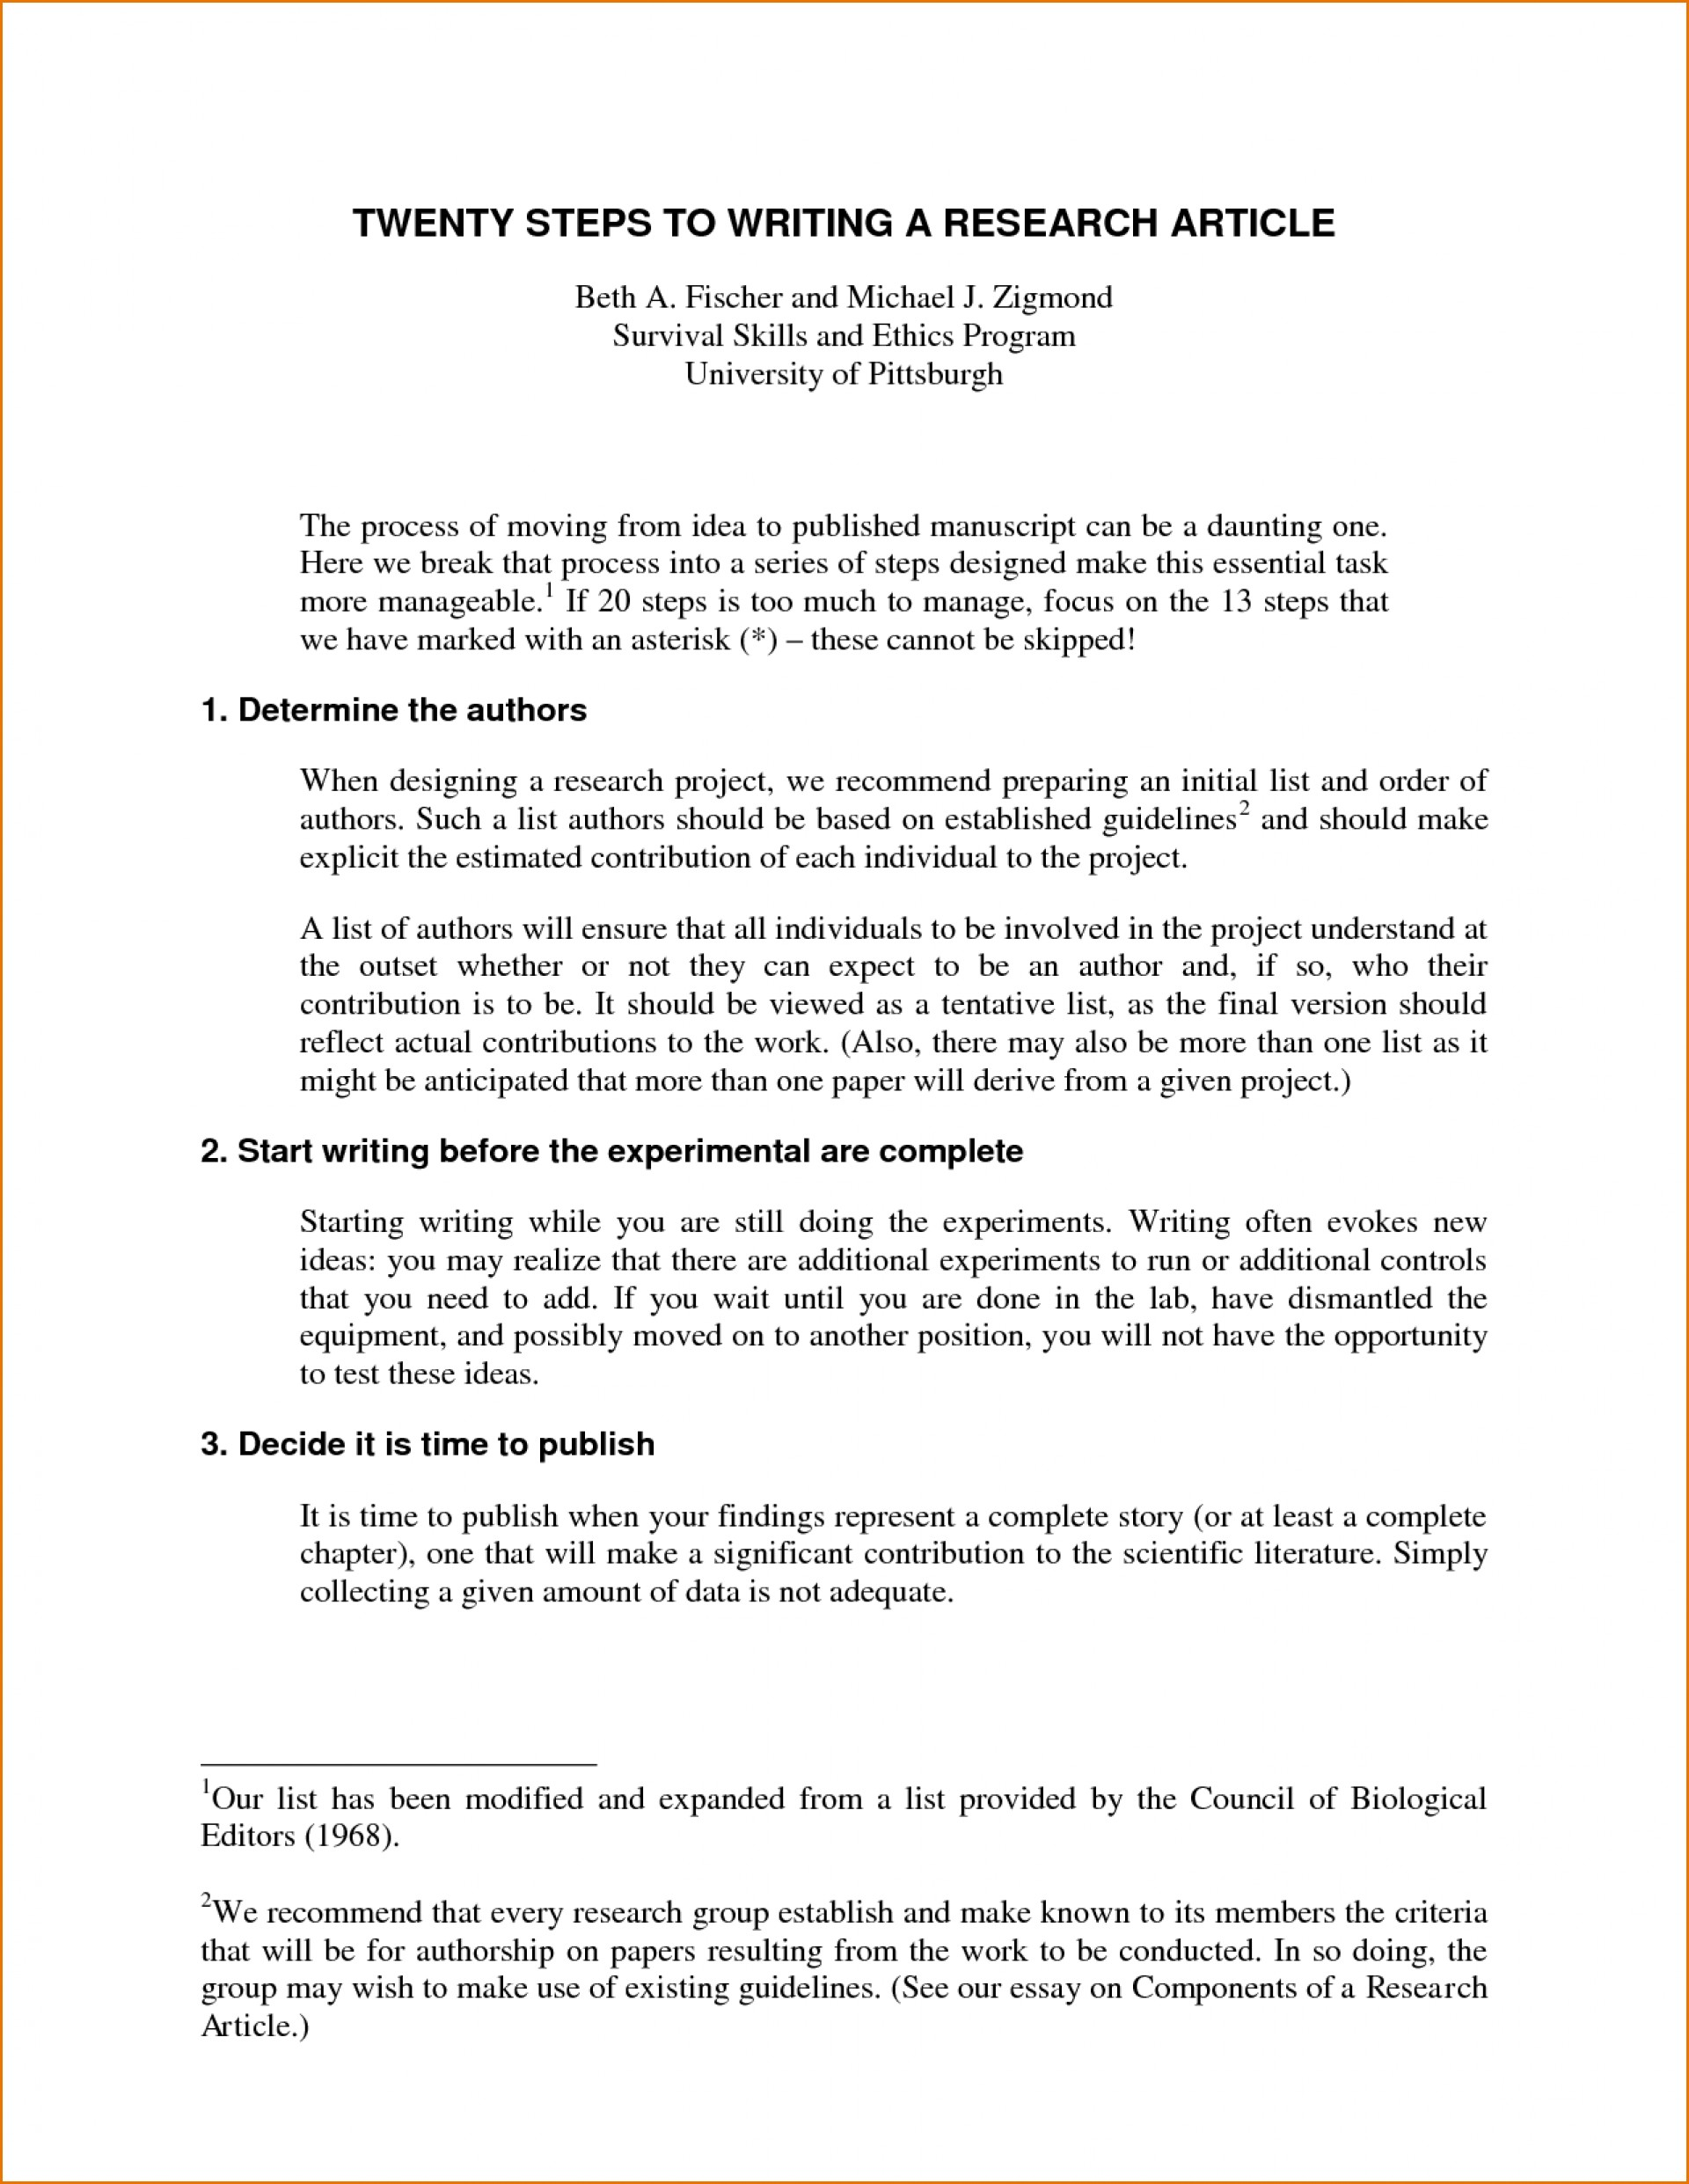 006 Steps Writing Research Frightening Paper 12 Ten For Papers To A 10 Page 1920